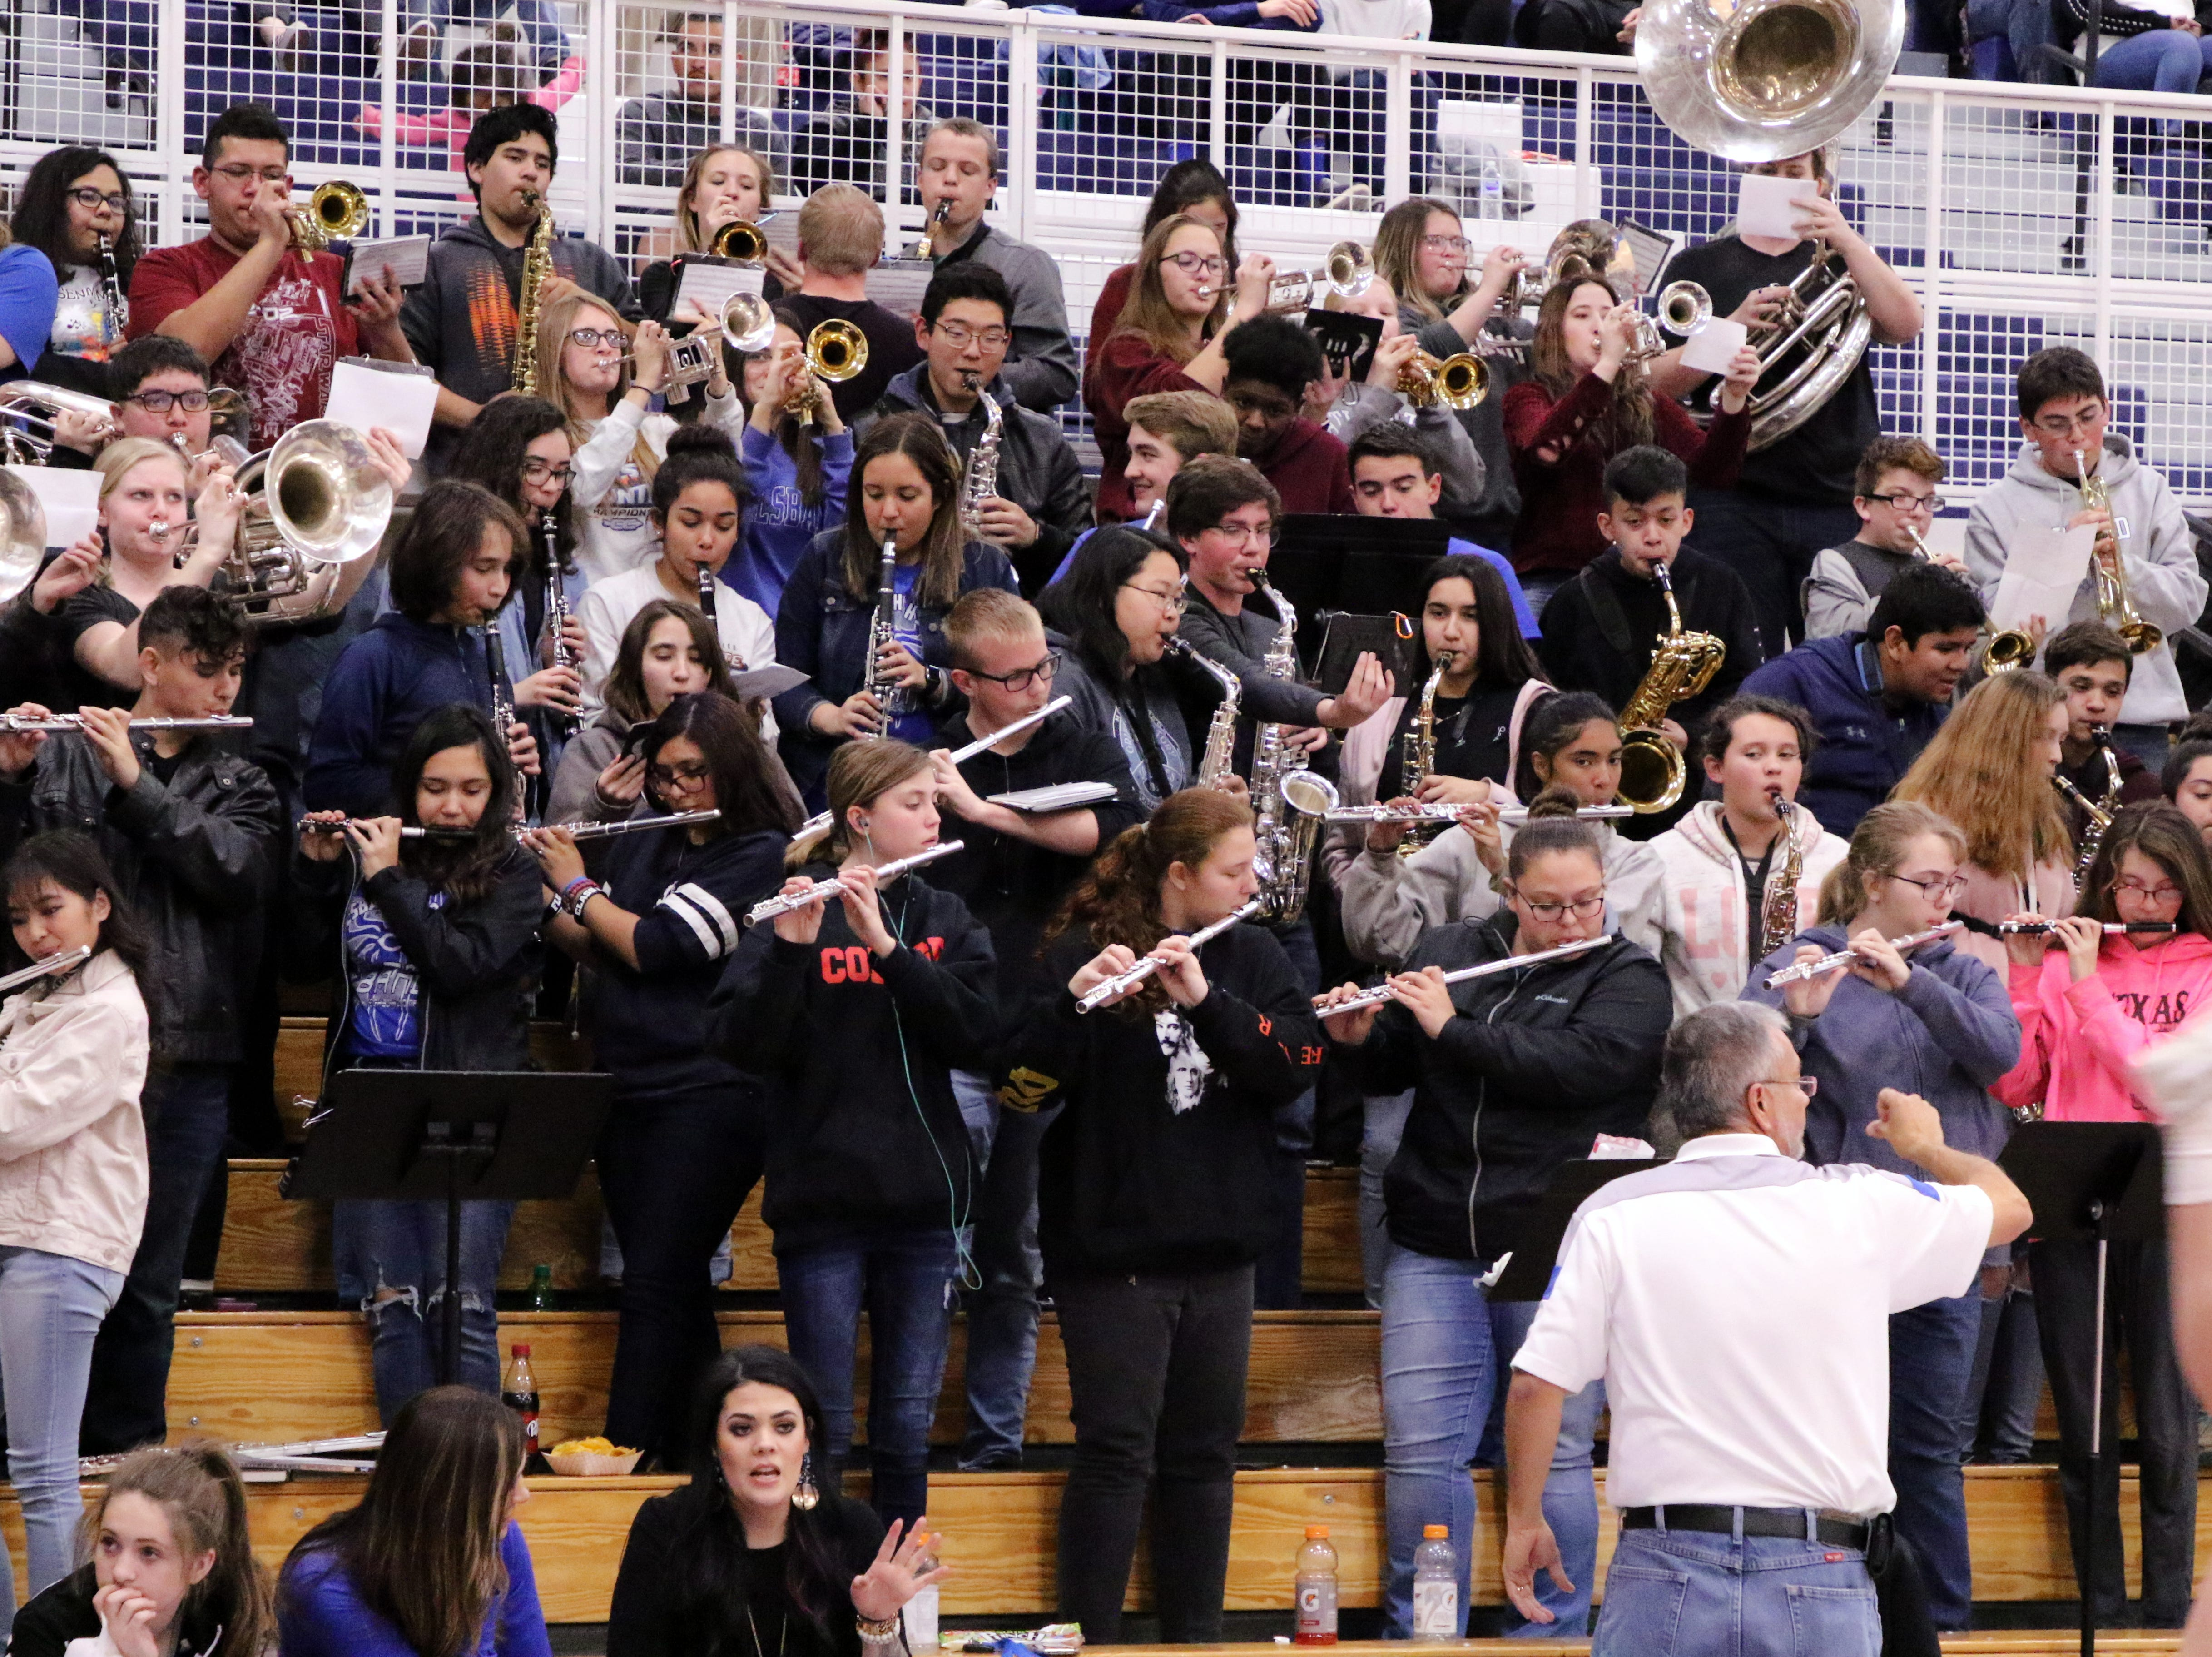 Carlsbad's band plays during Friday's game against Hobbs. Hobbs won, 46-42.